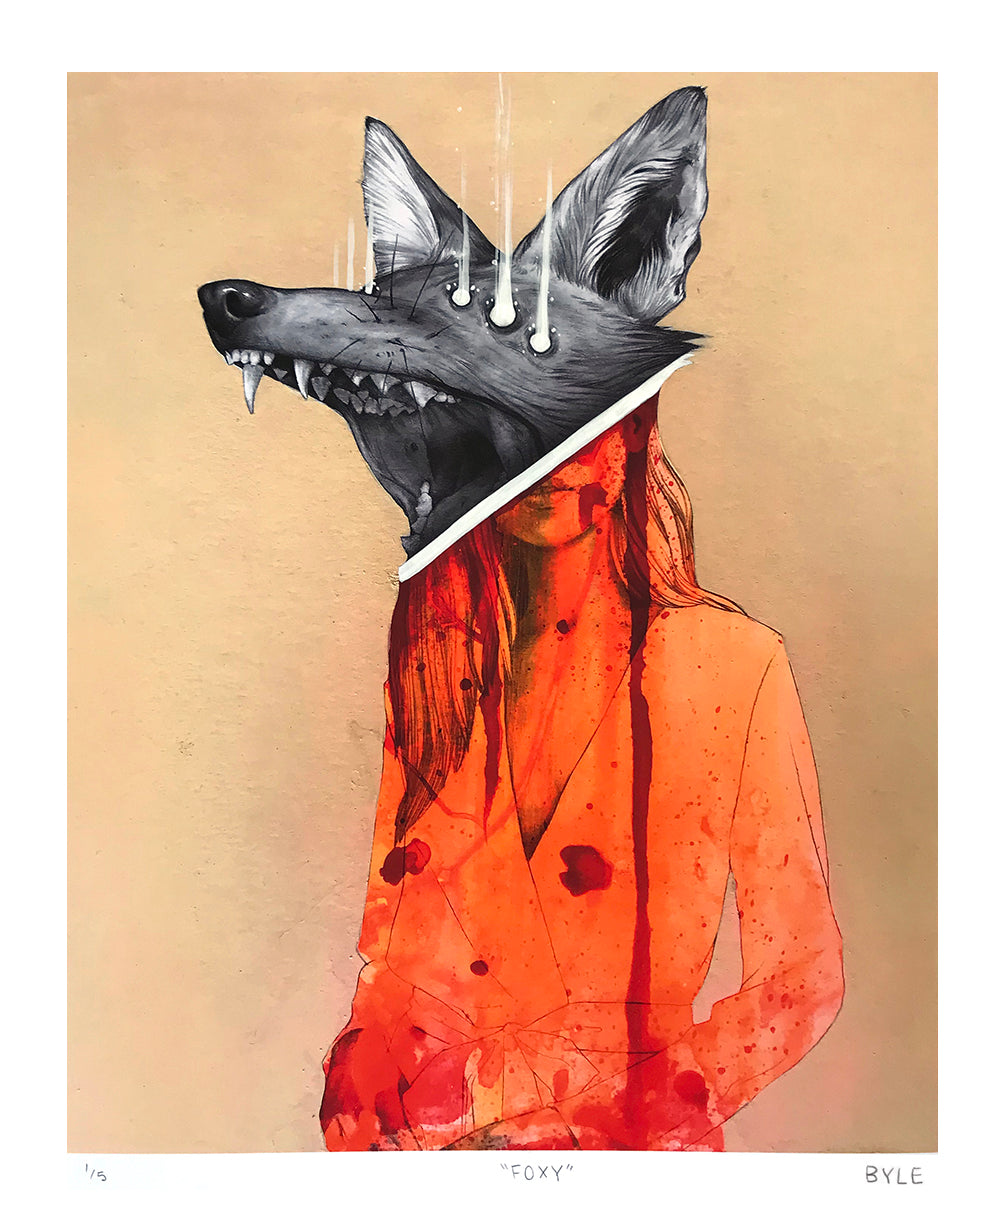 "Matt Byle ""Foxy"" - Hand-Embellished Variant, Edition of 5 - 14 x 17"""